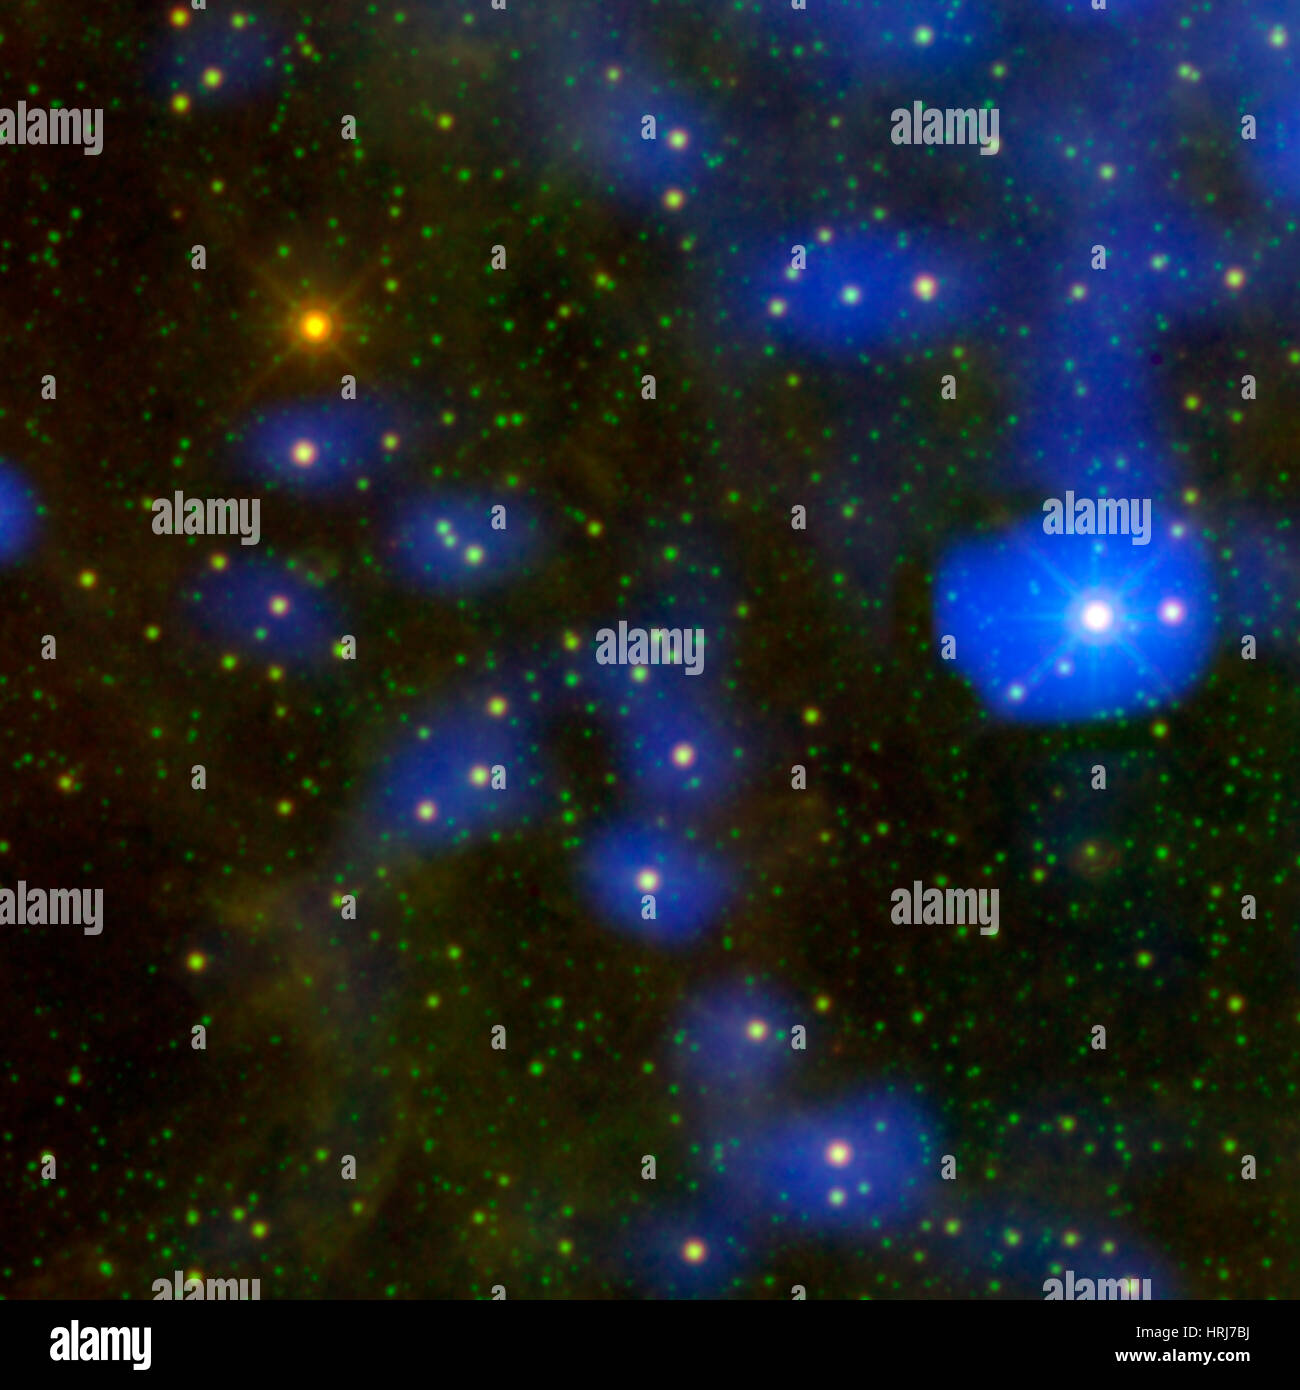 WISE J180956.27-330500.2, Dusty Star Stands Out From the Rest - Stock Image